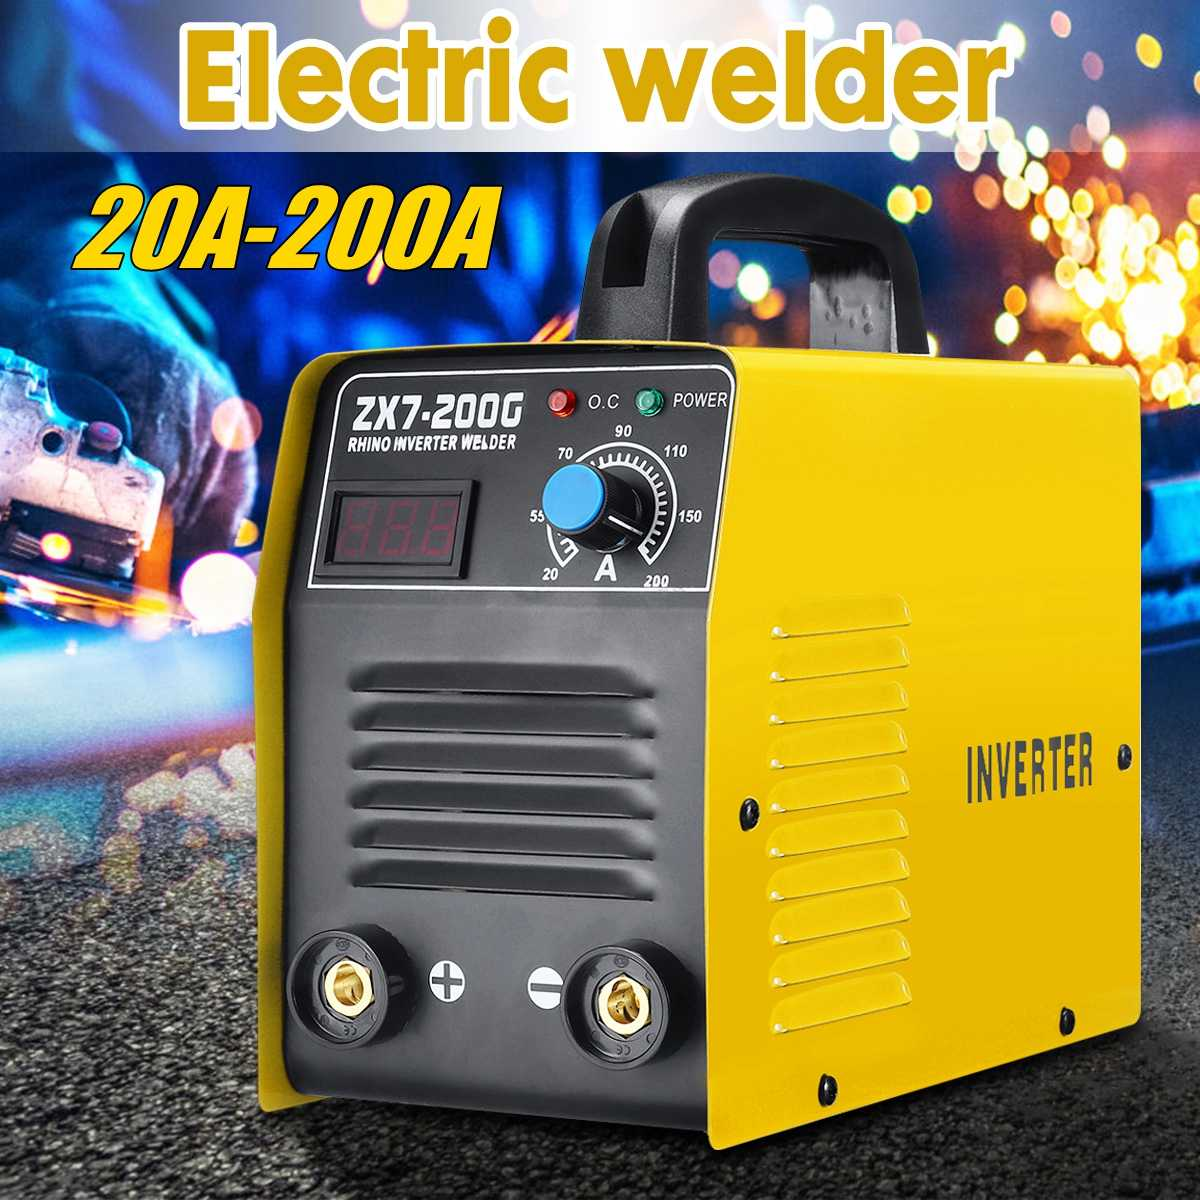 220V 20-200A 25KVA Handheld Mini MMA IGBT <font><b>Inverter</b></font> Mini Electric IGBT MMA ARC ZX7 7Welding Welder-Machine Tool image